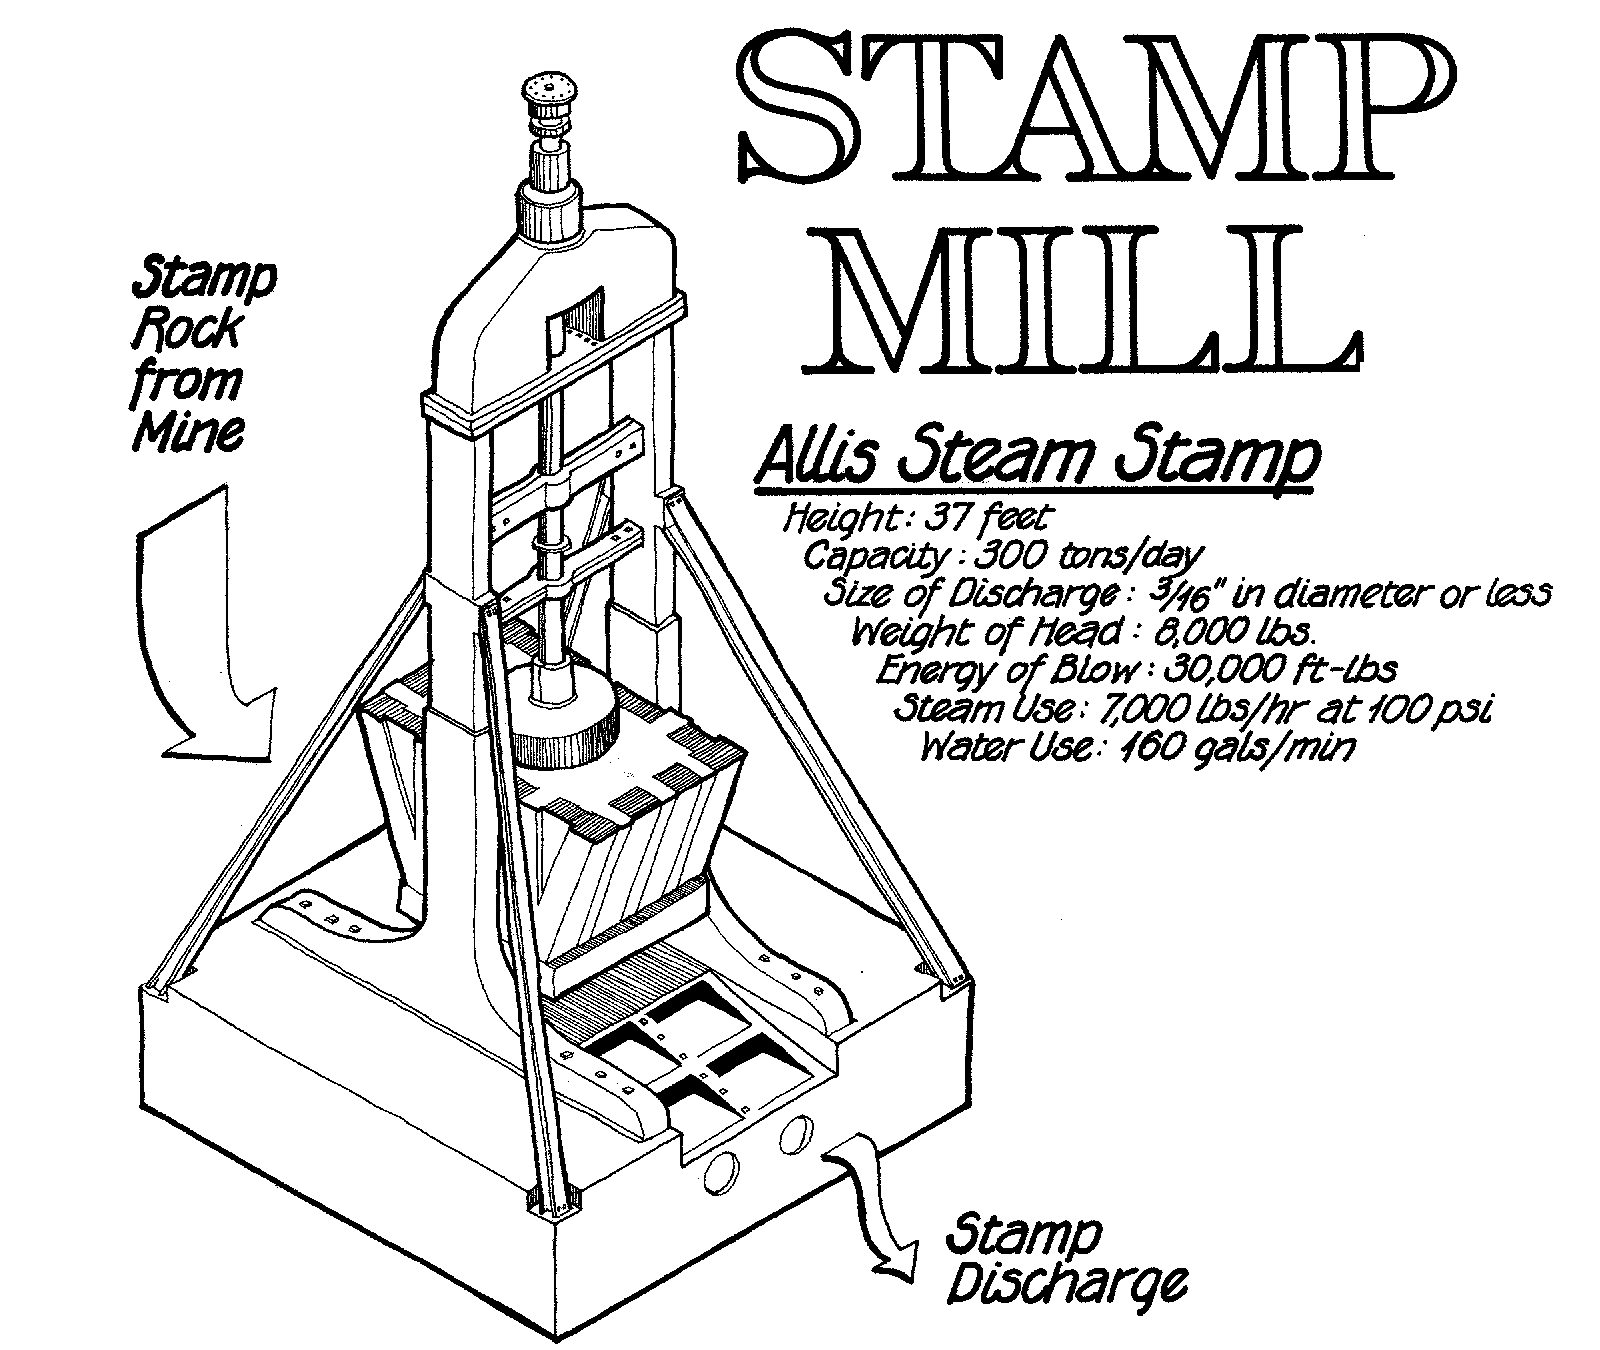 Stamp Mill